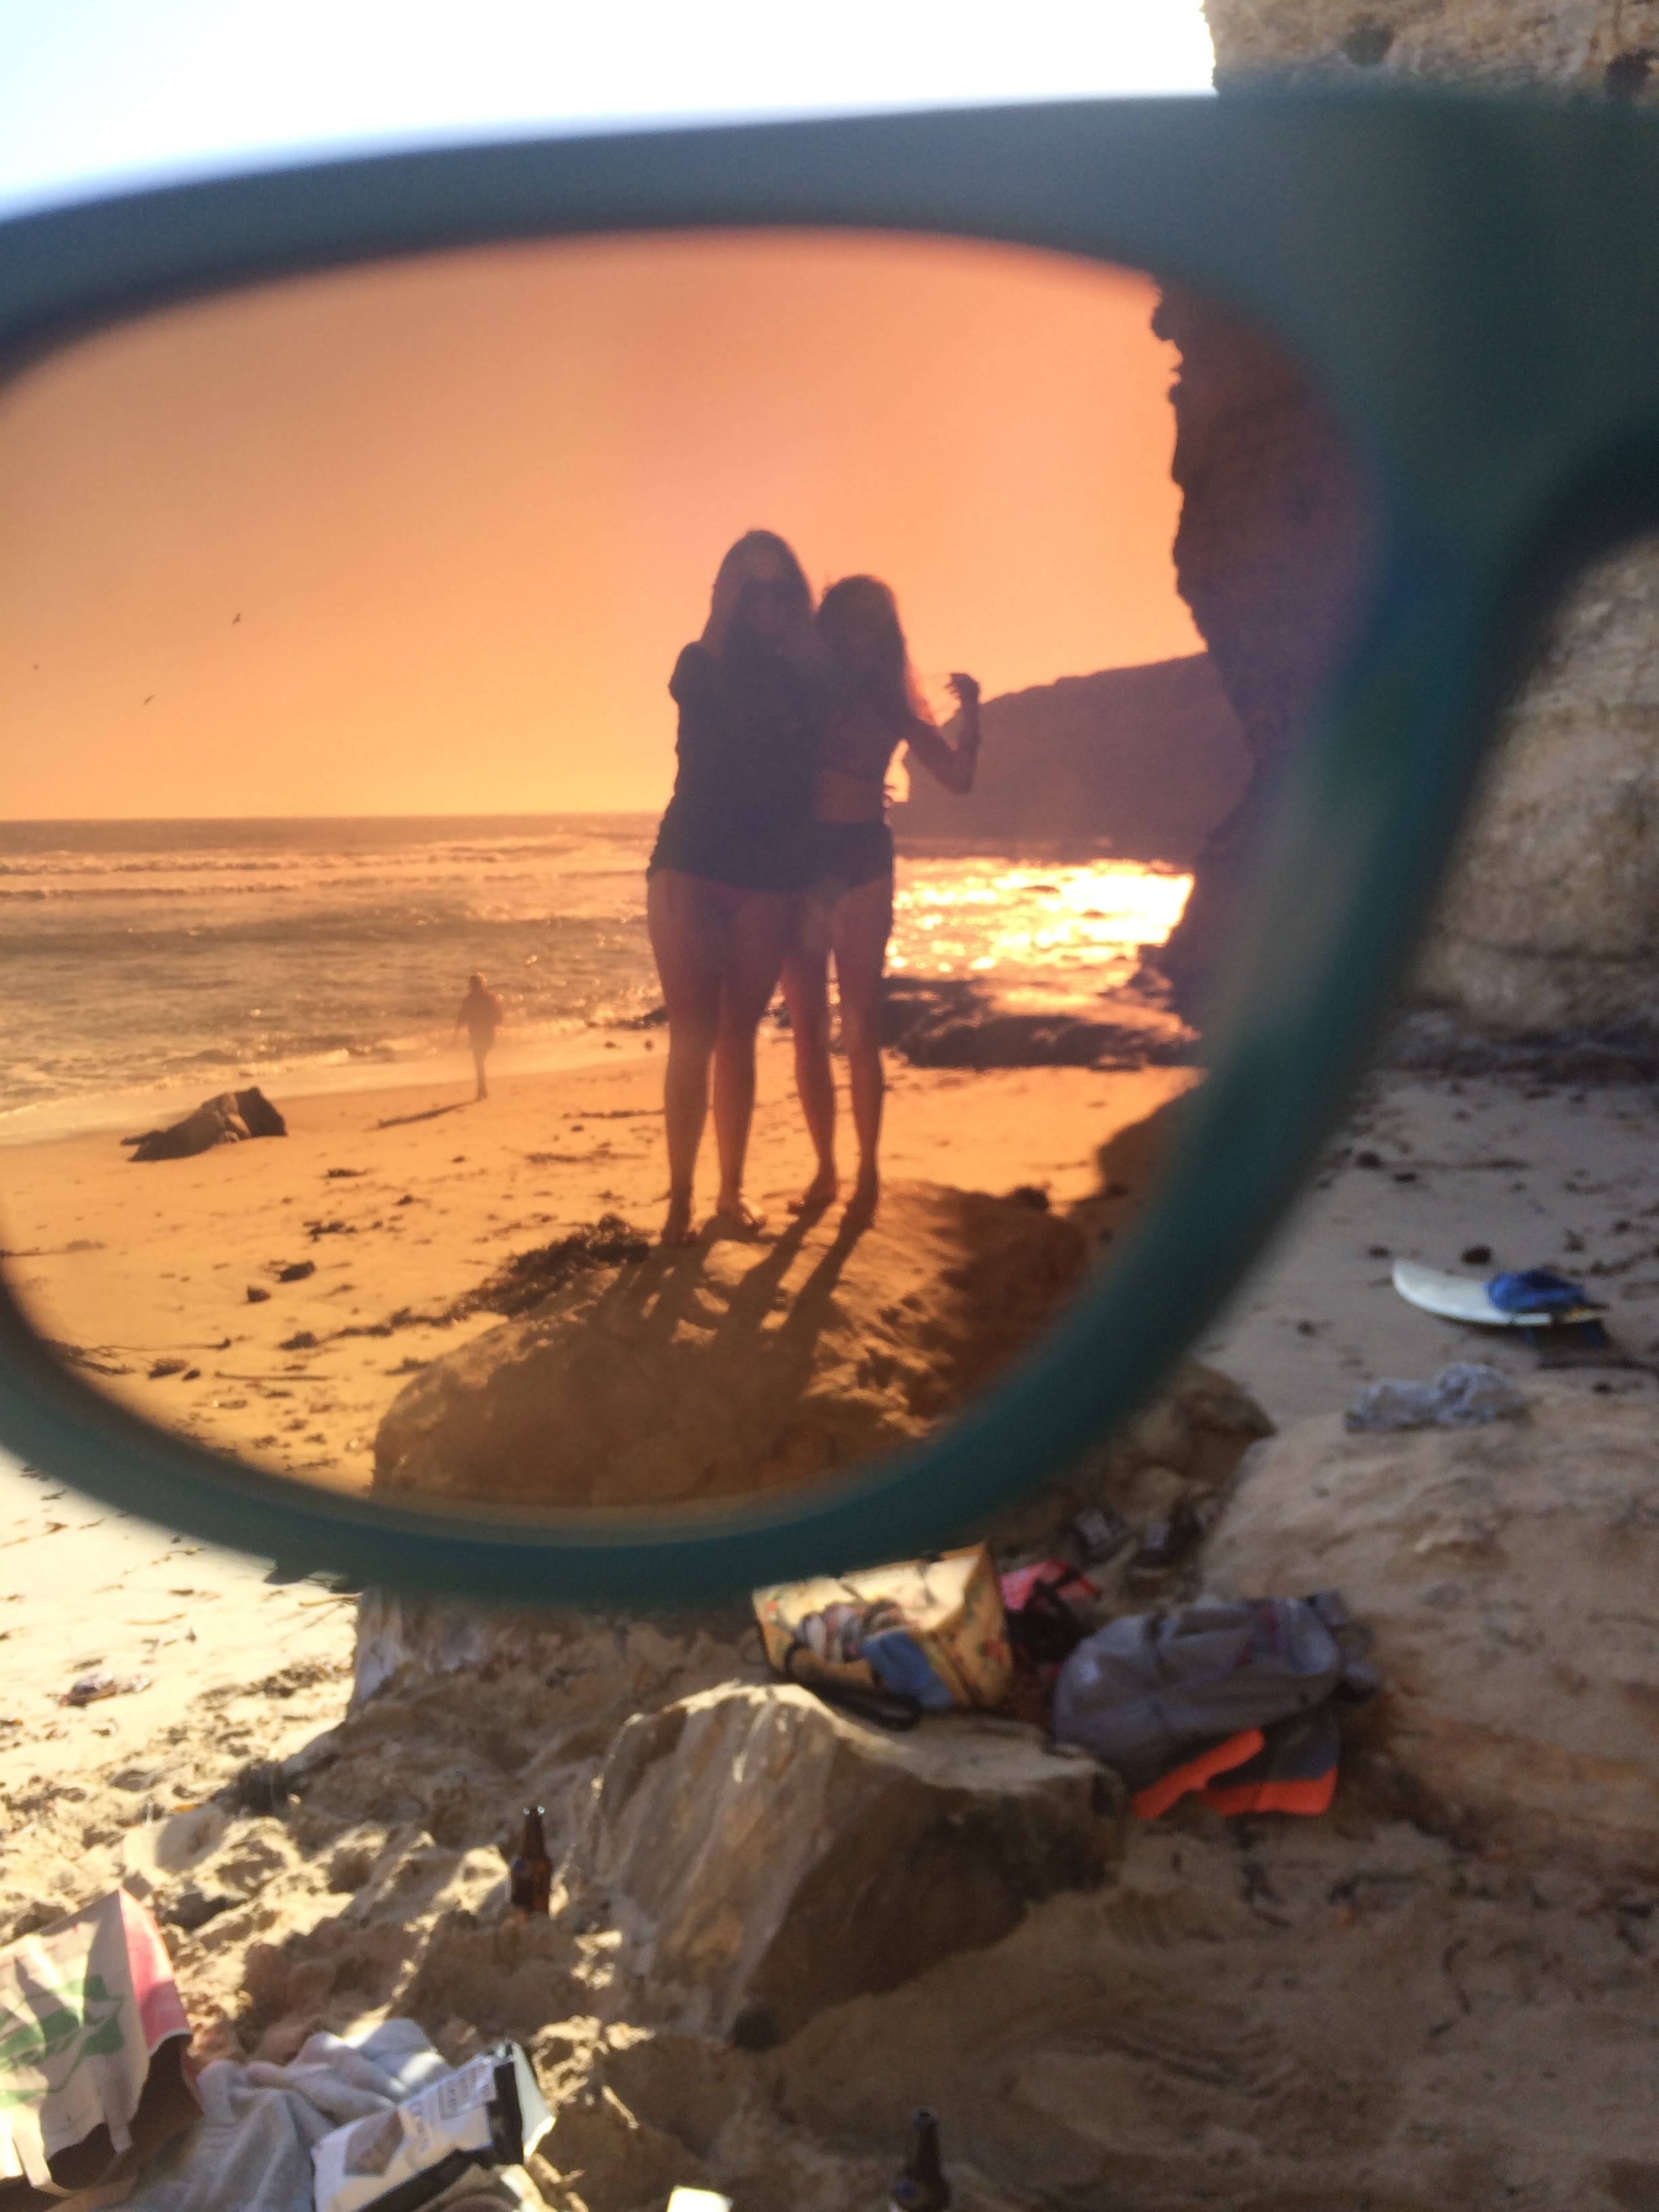 Sena & me through sunglasses, 2014